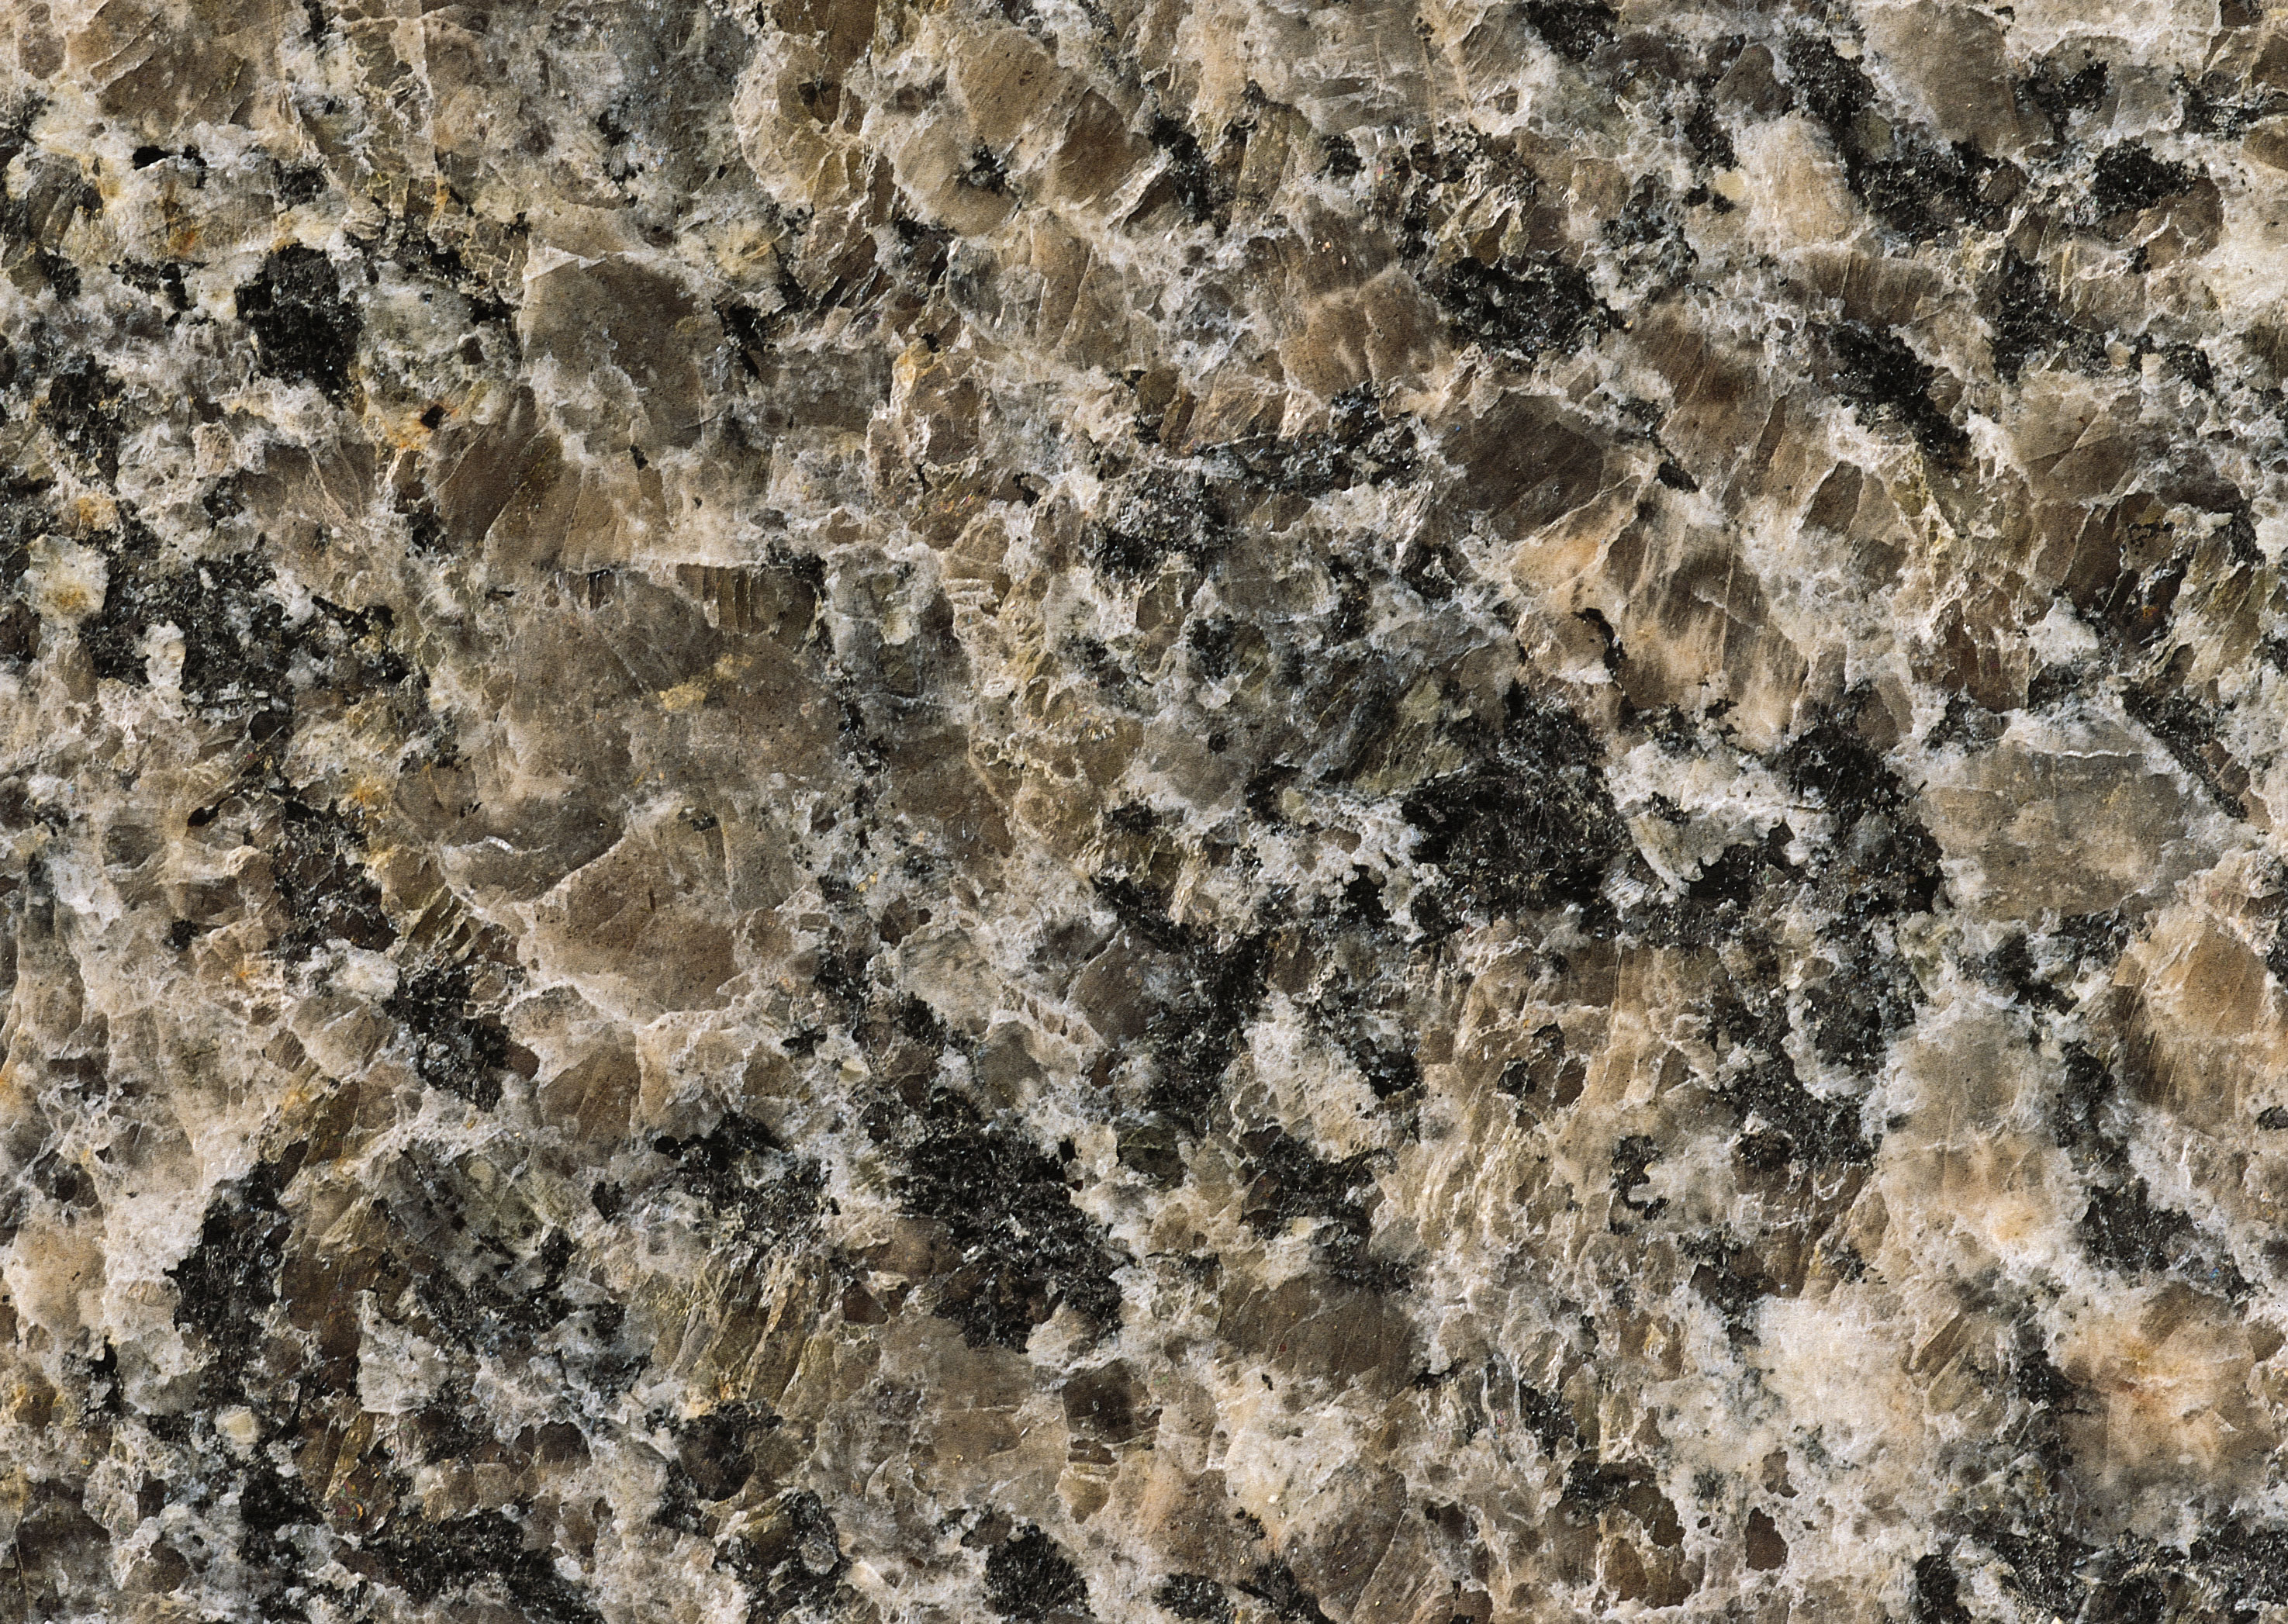 Granite texture background image, Granite image